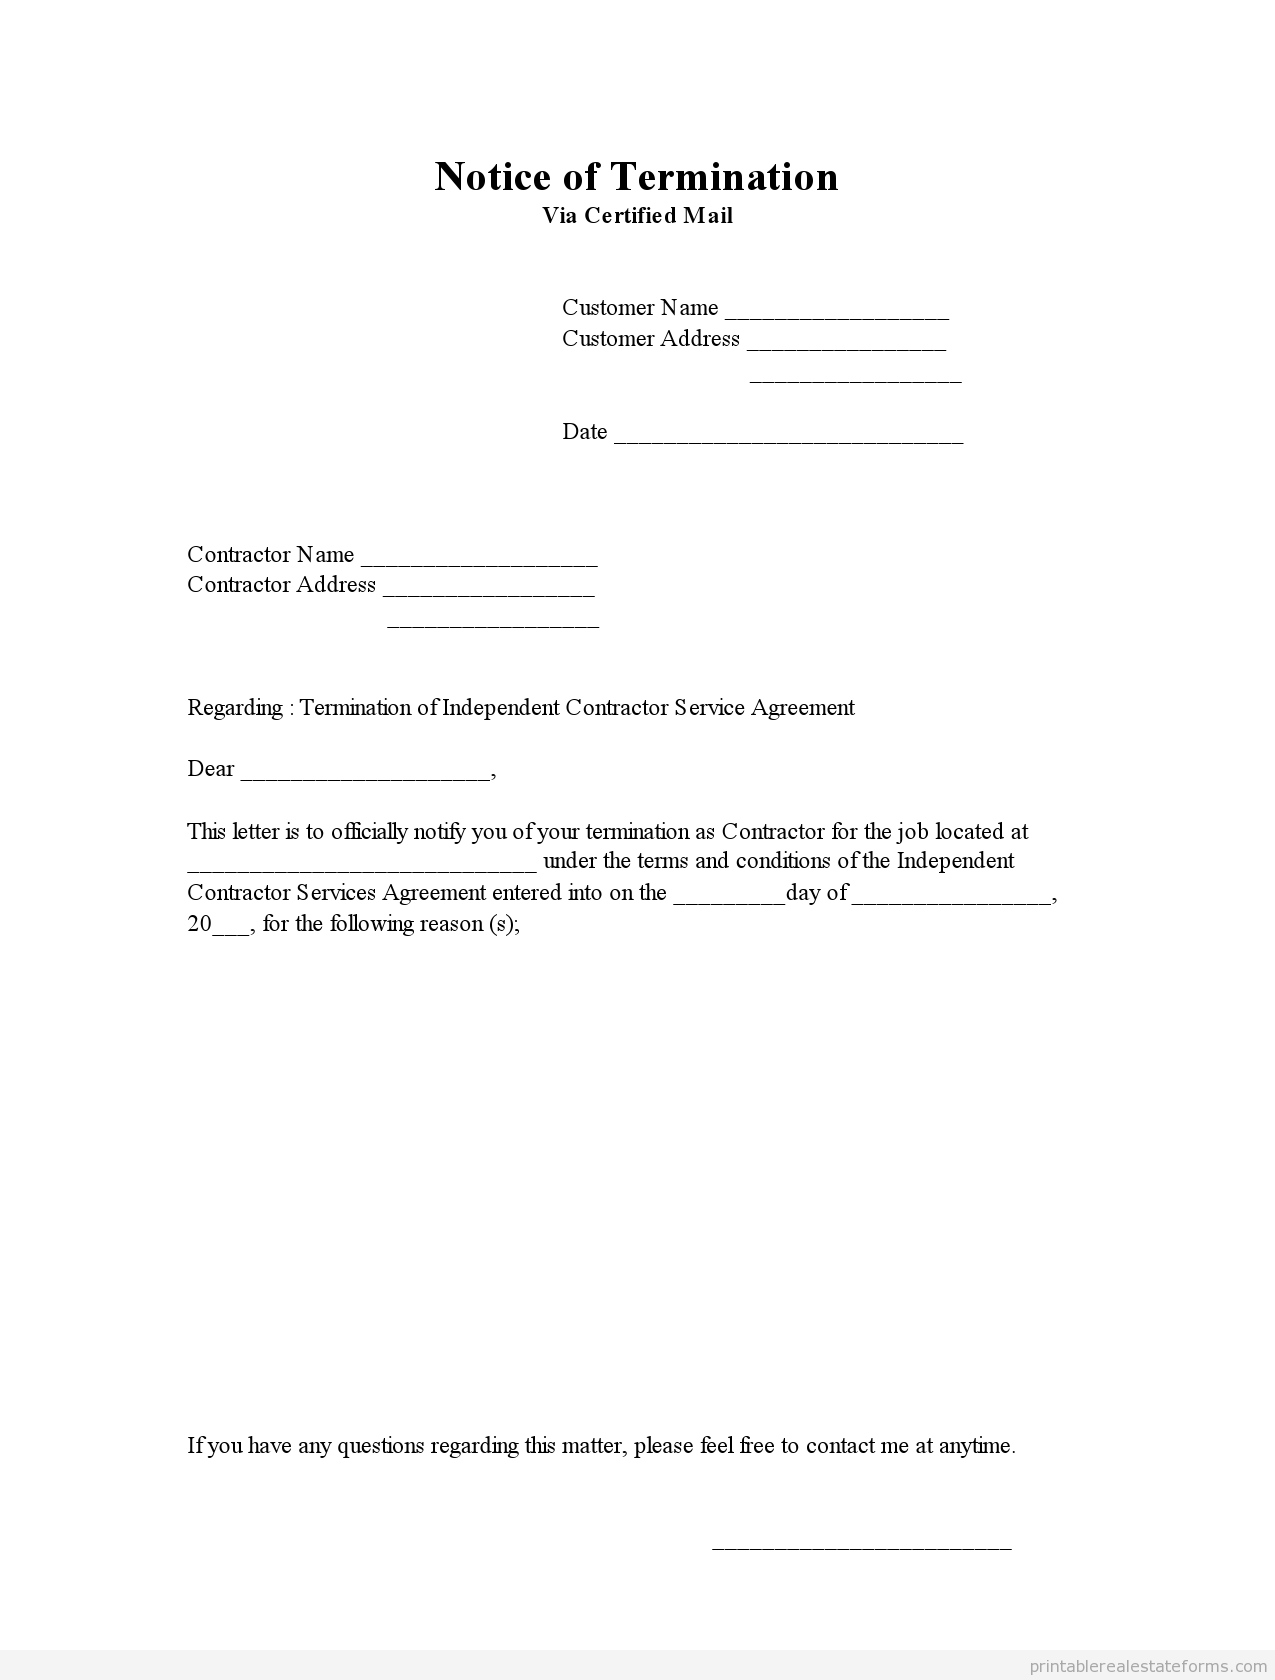 Printable Notice Of Termination Template   Sample Forms